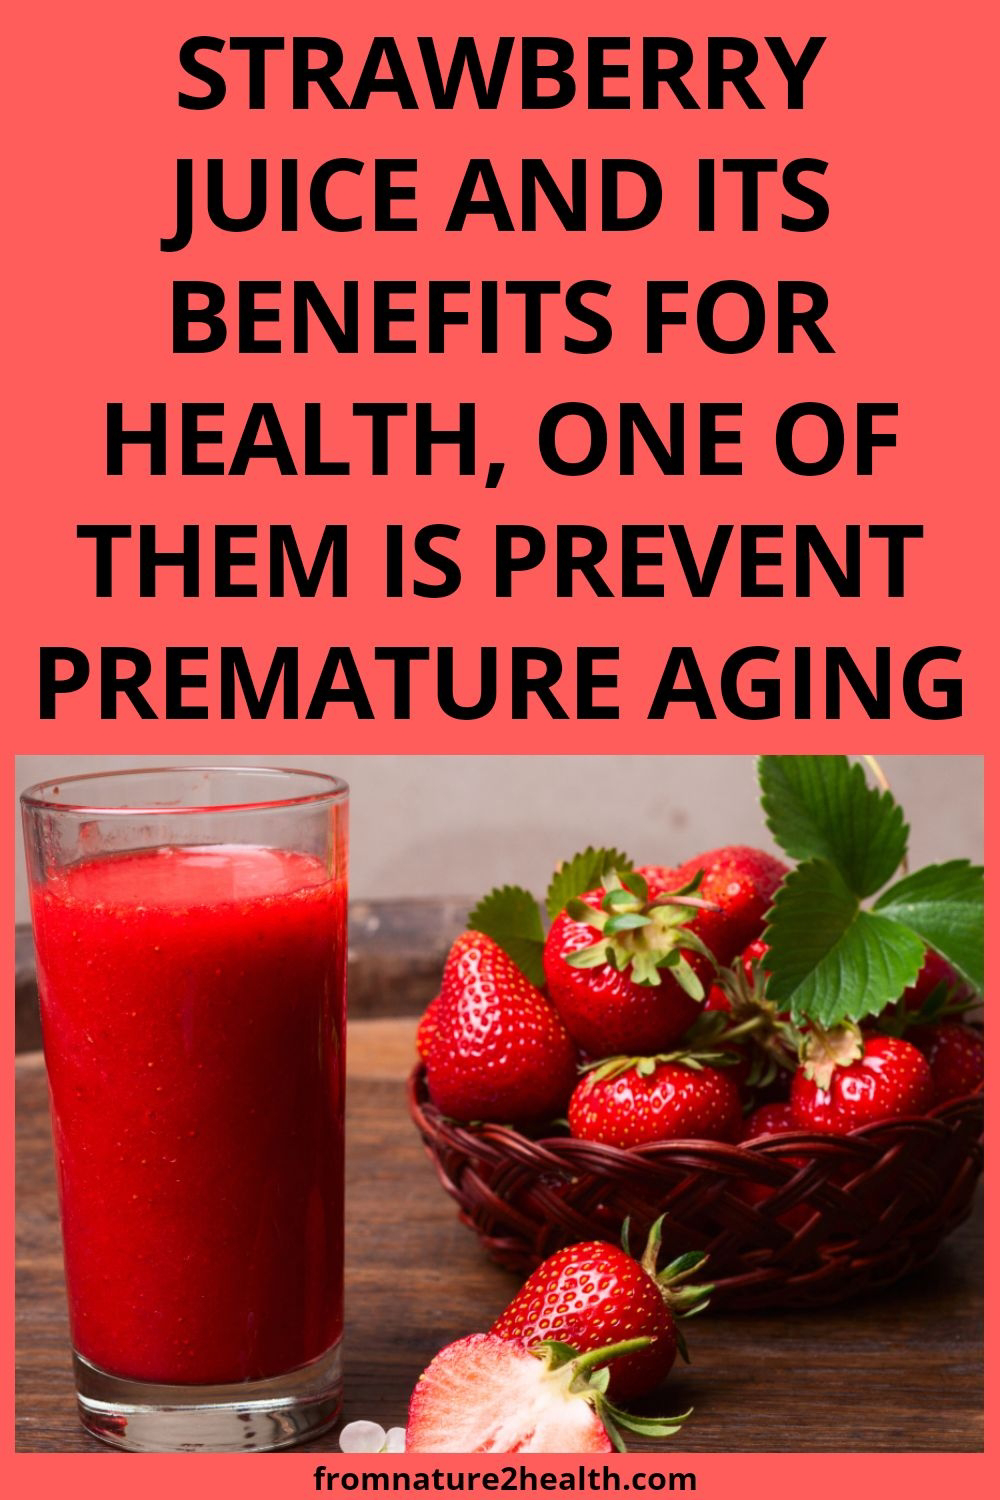 Strawberry Juice And Its Benefits for Health, One of Them is Prevent Premature Aging